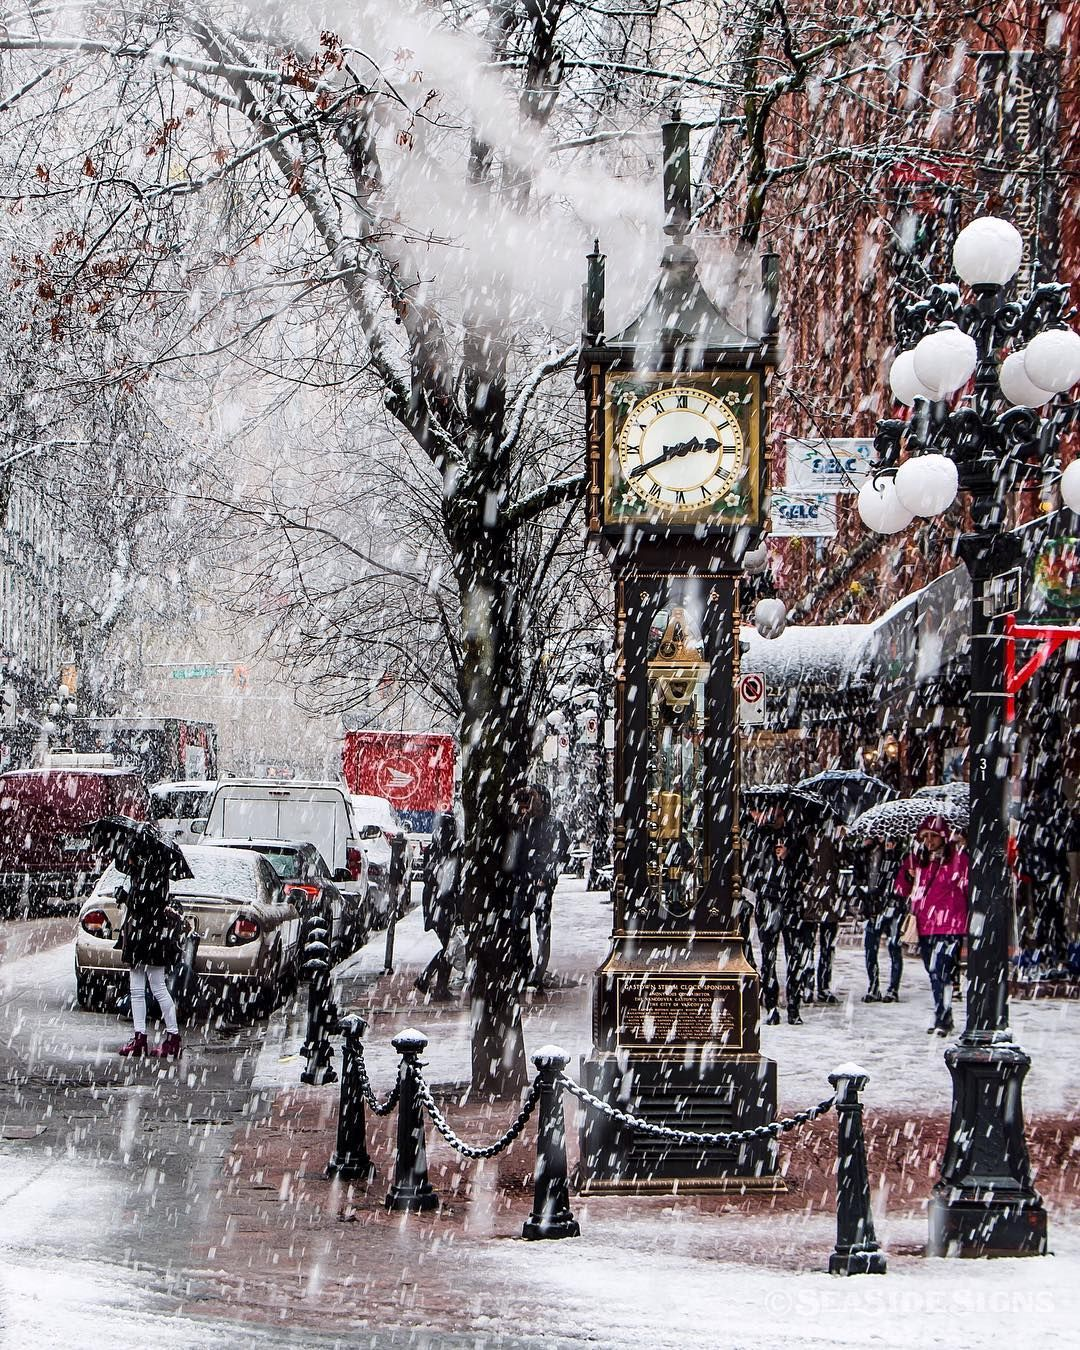 Glorious Gastown Yesterday S Blizzard In The Heart Historic